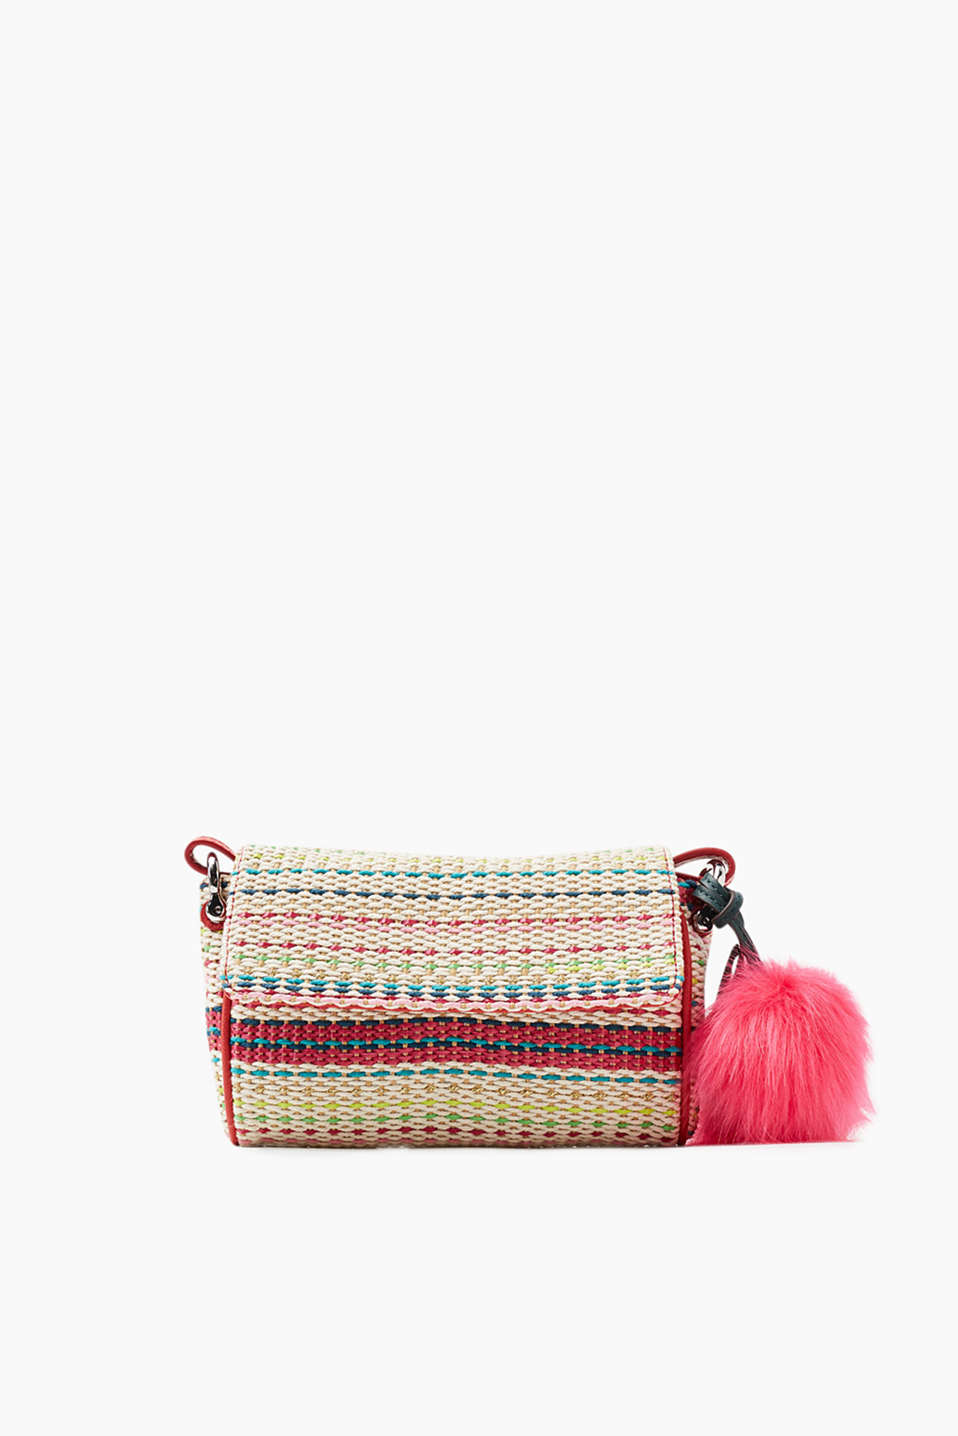 Handbag in a colourful braided look with a vibrant faux fur charm